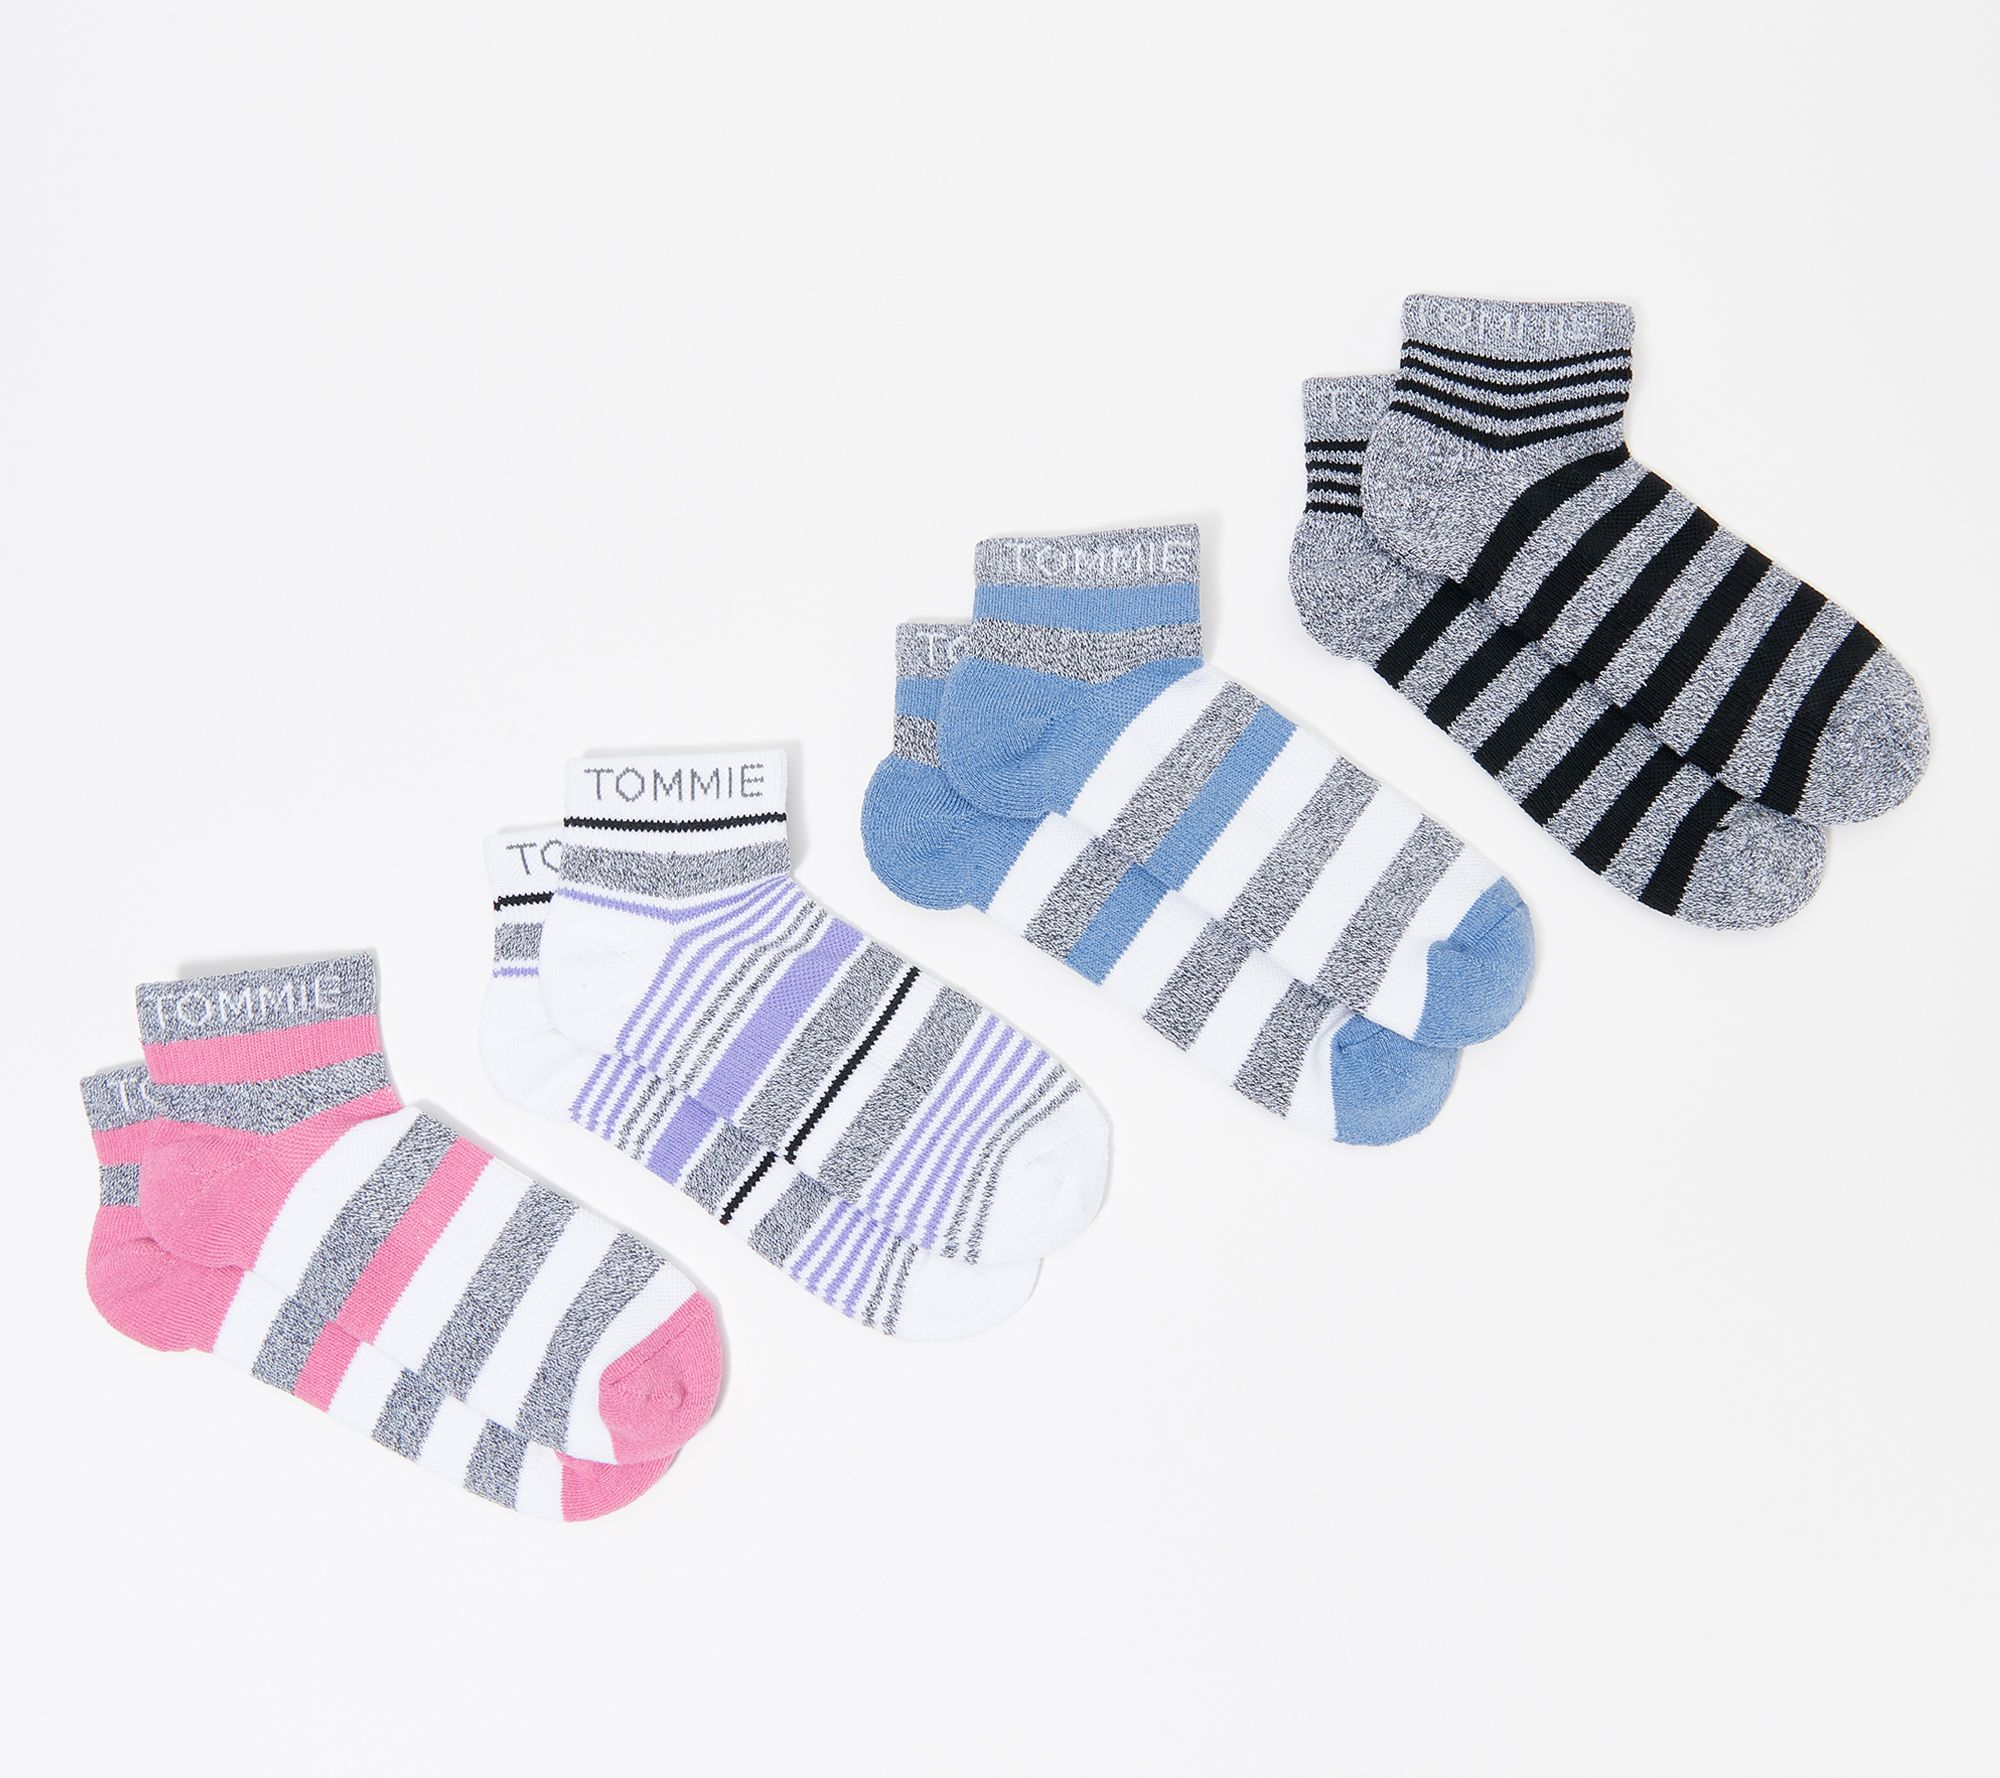 Toe White//Grey Heather Heel 8 to 11 Essentials 10-Pack Cotton Crew Sock Casual